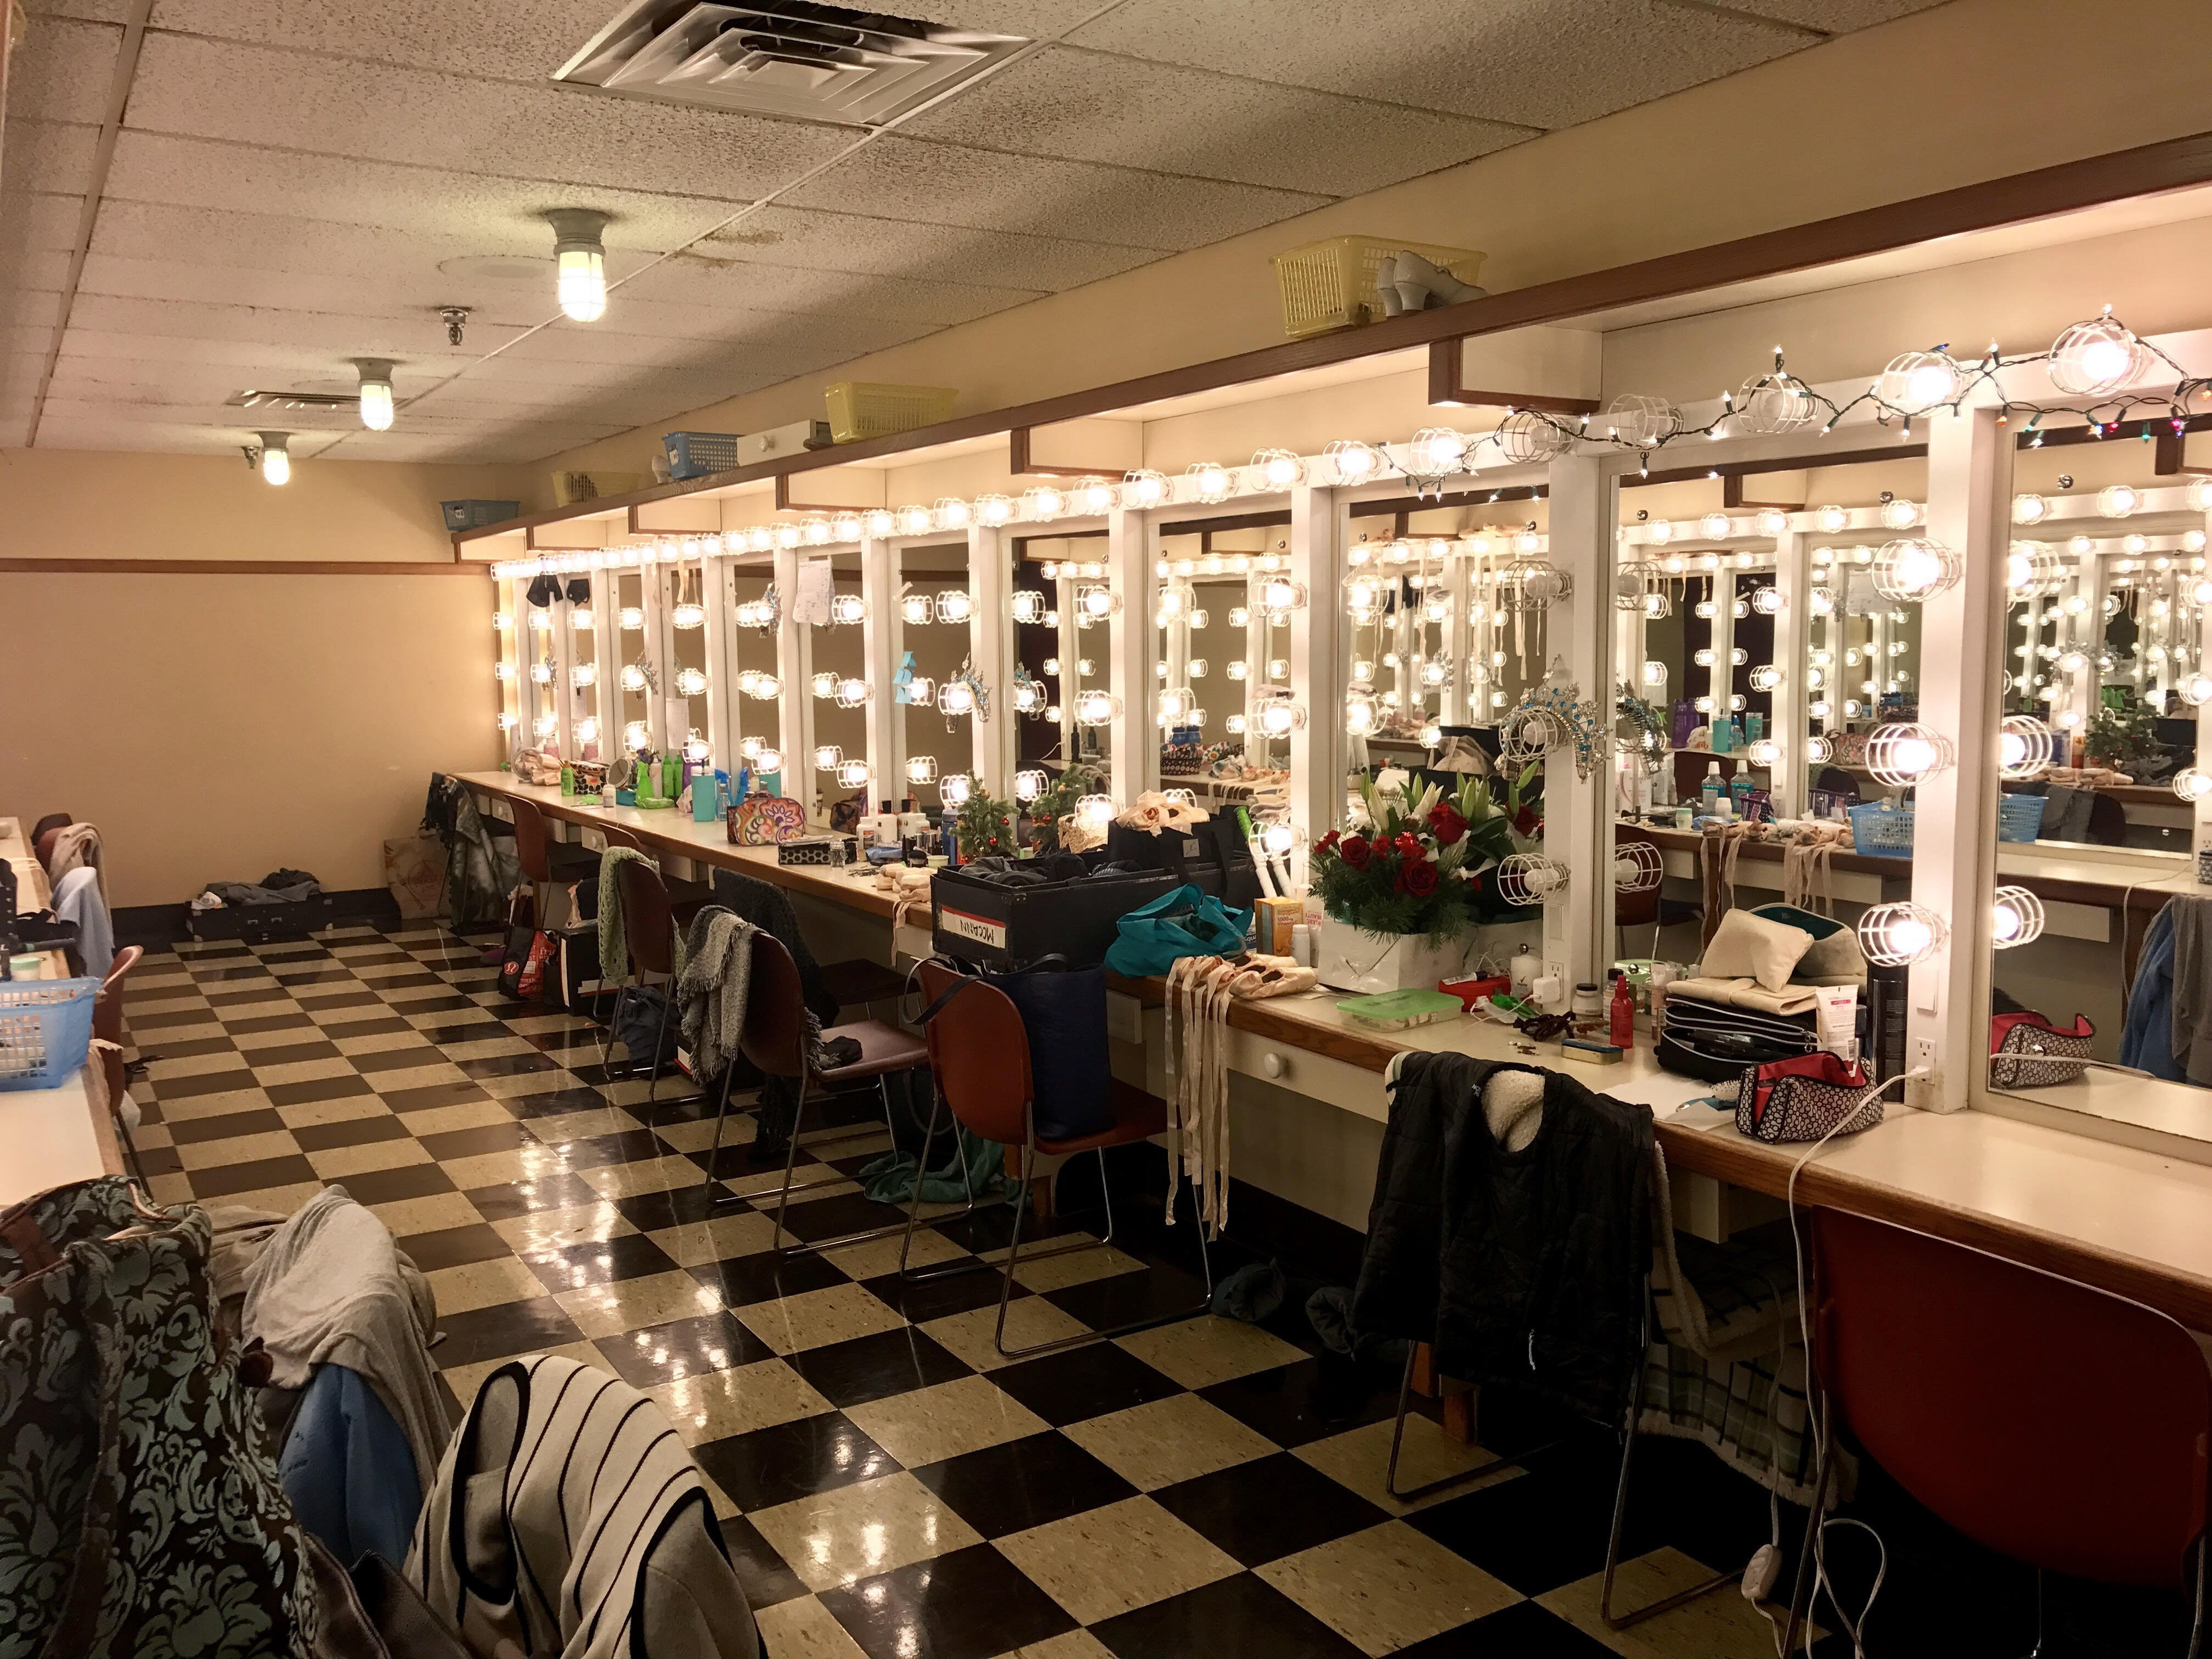 Dancers Share Their Dressing Room Snapshots Pittsburgh